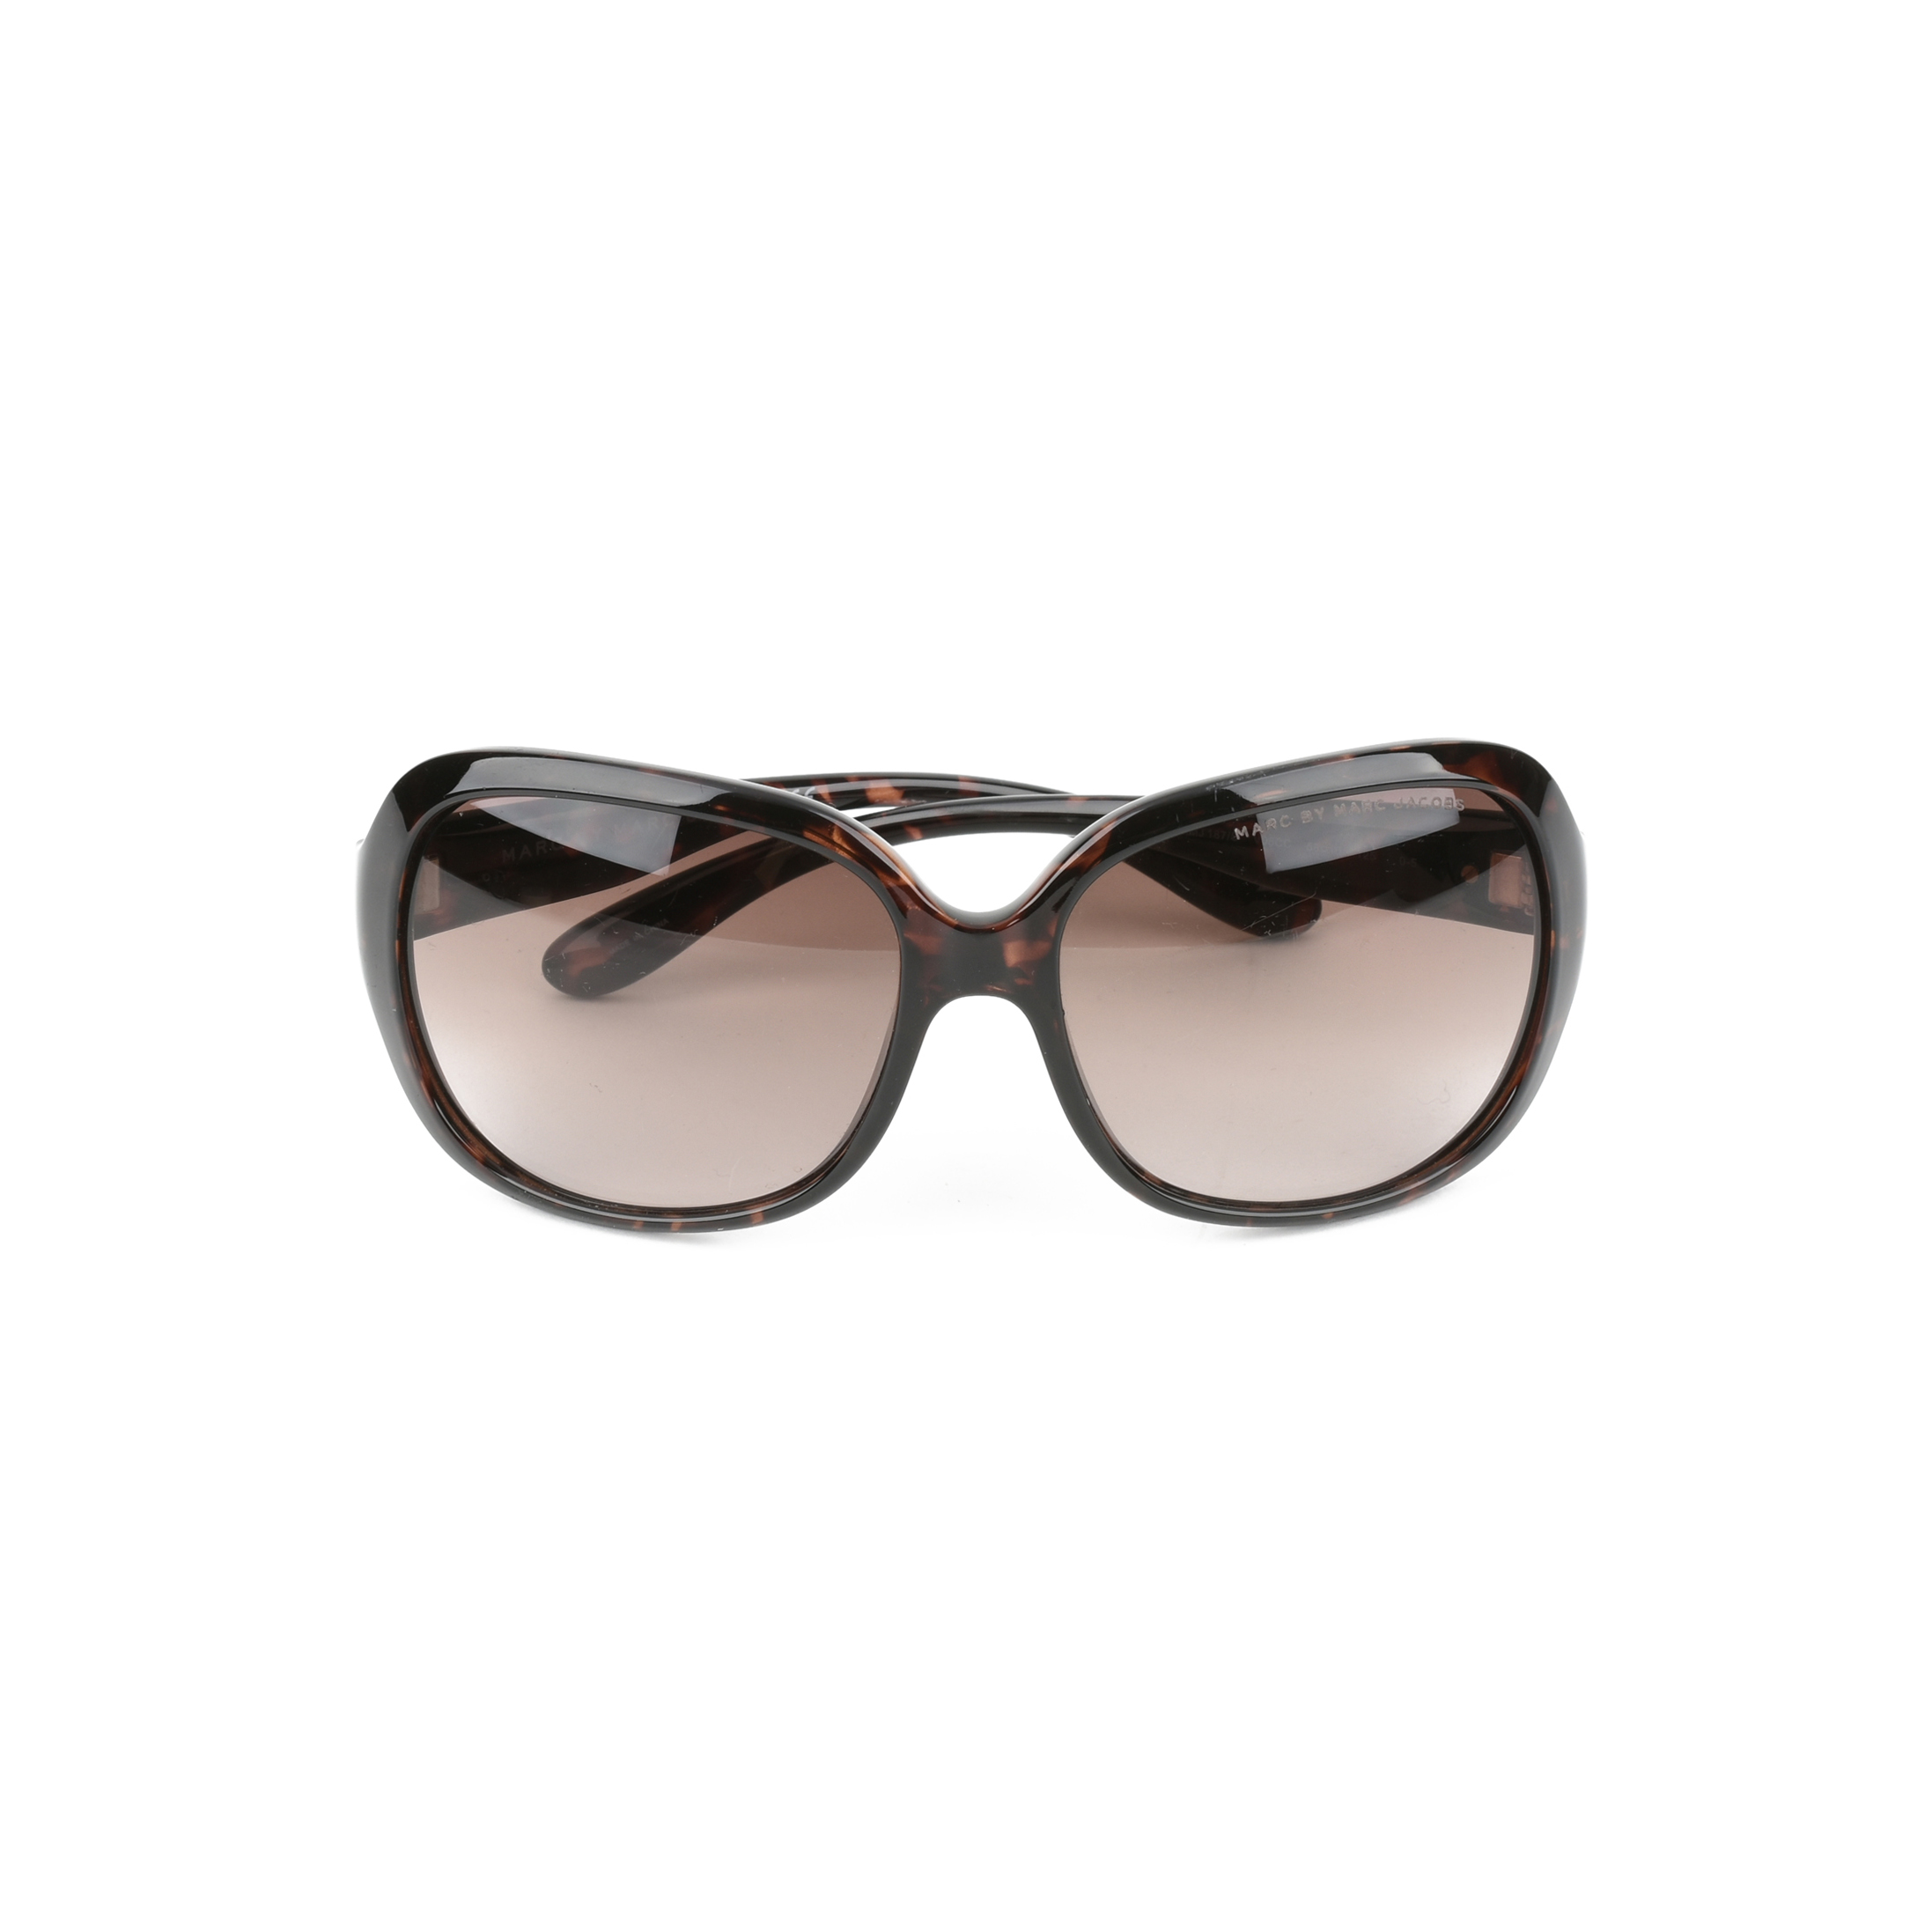 e8ab79cb28 Authentic Second Hand Marc by Marc Jacobs Round Frame Tortoise Shell  Sunglasses (PSS-153-00010)